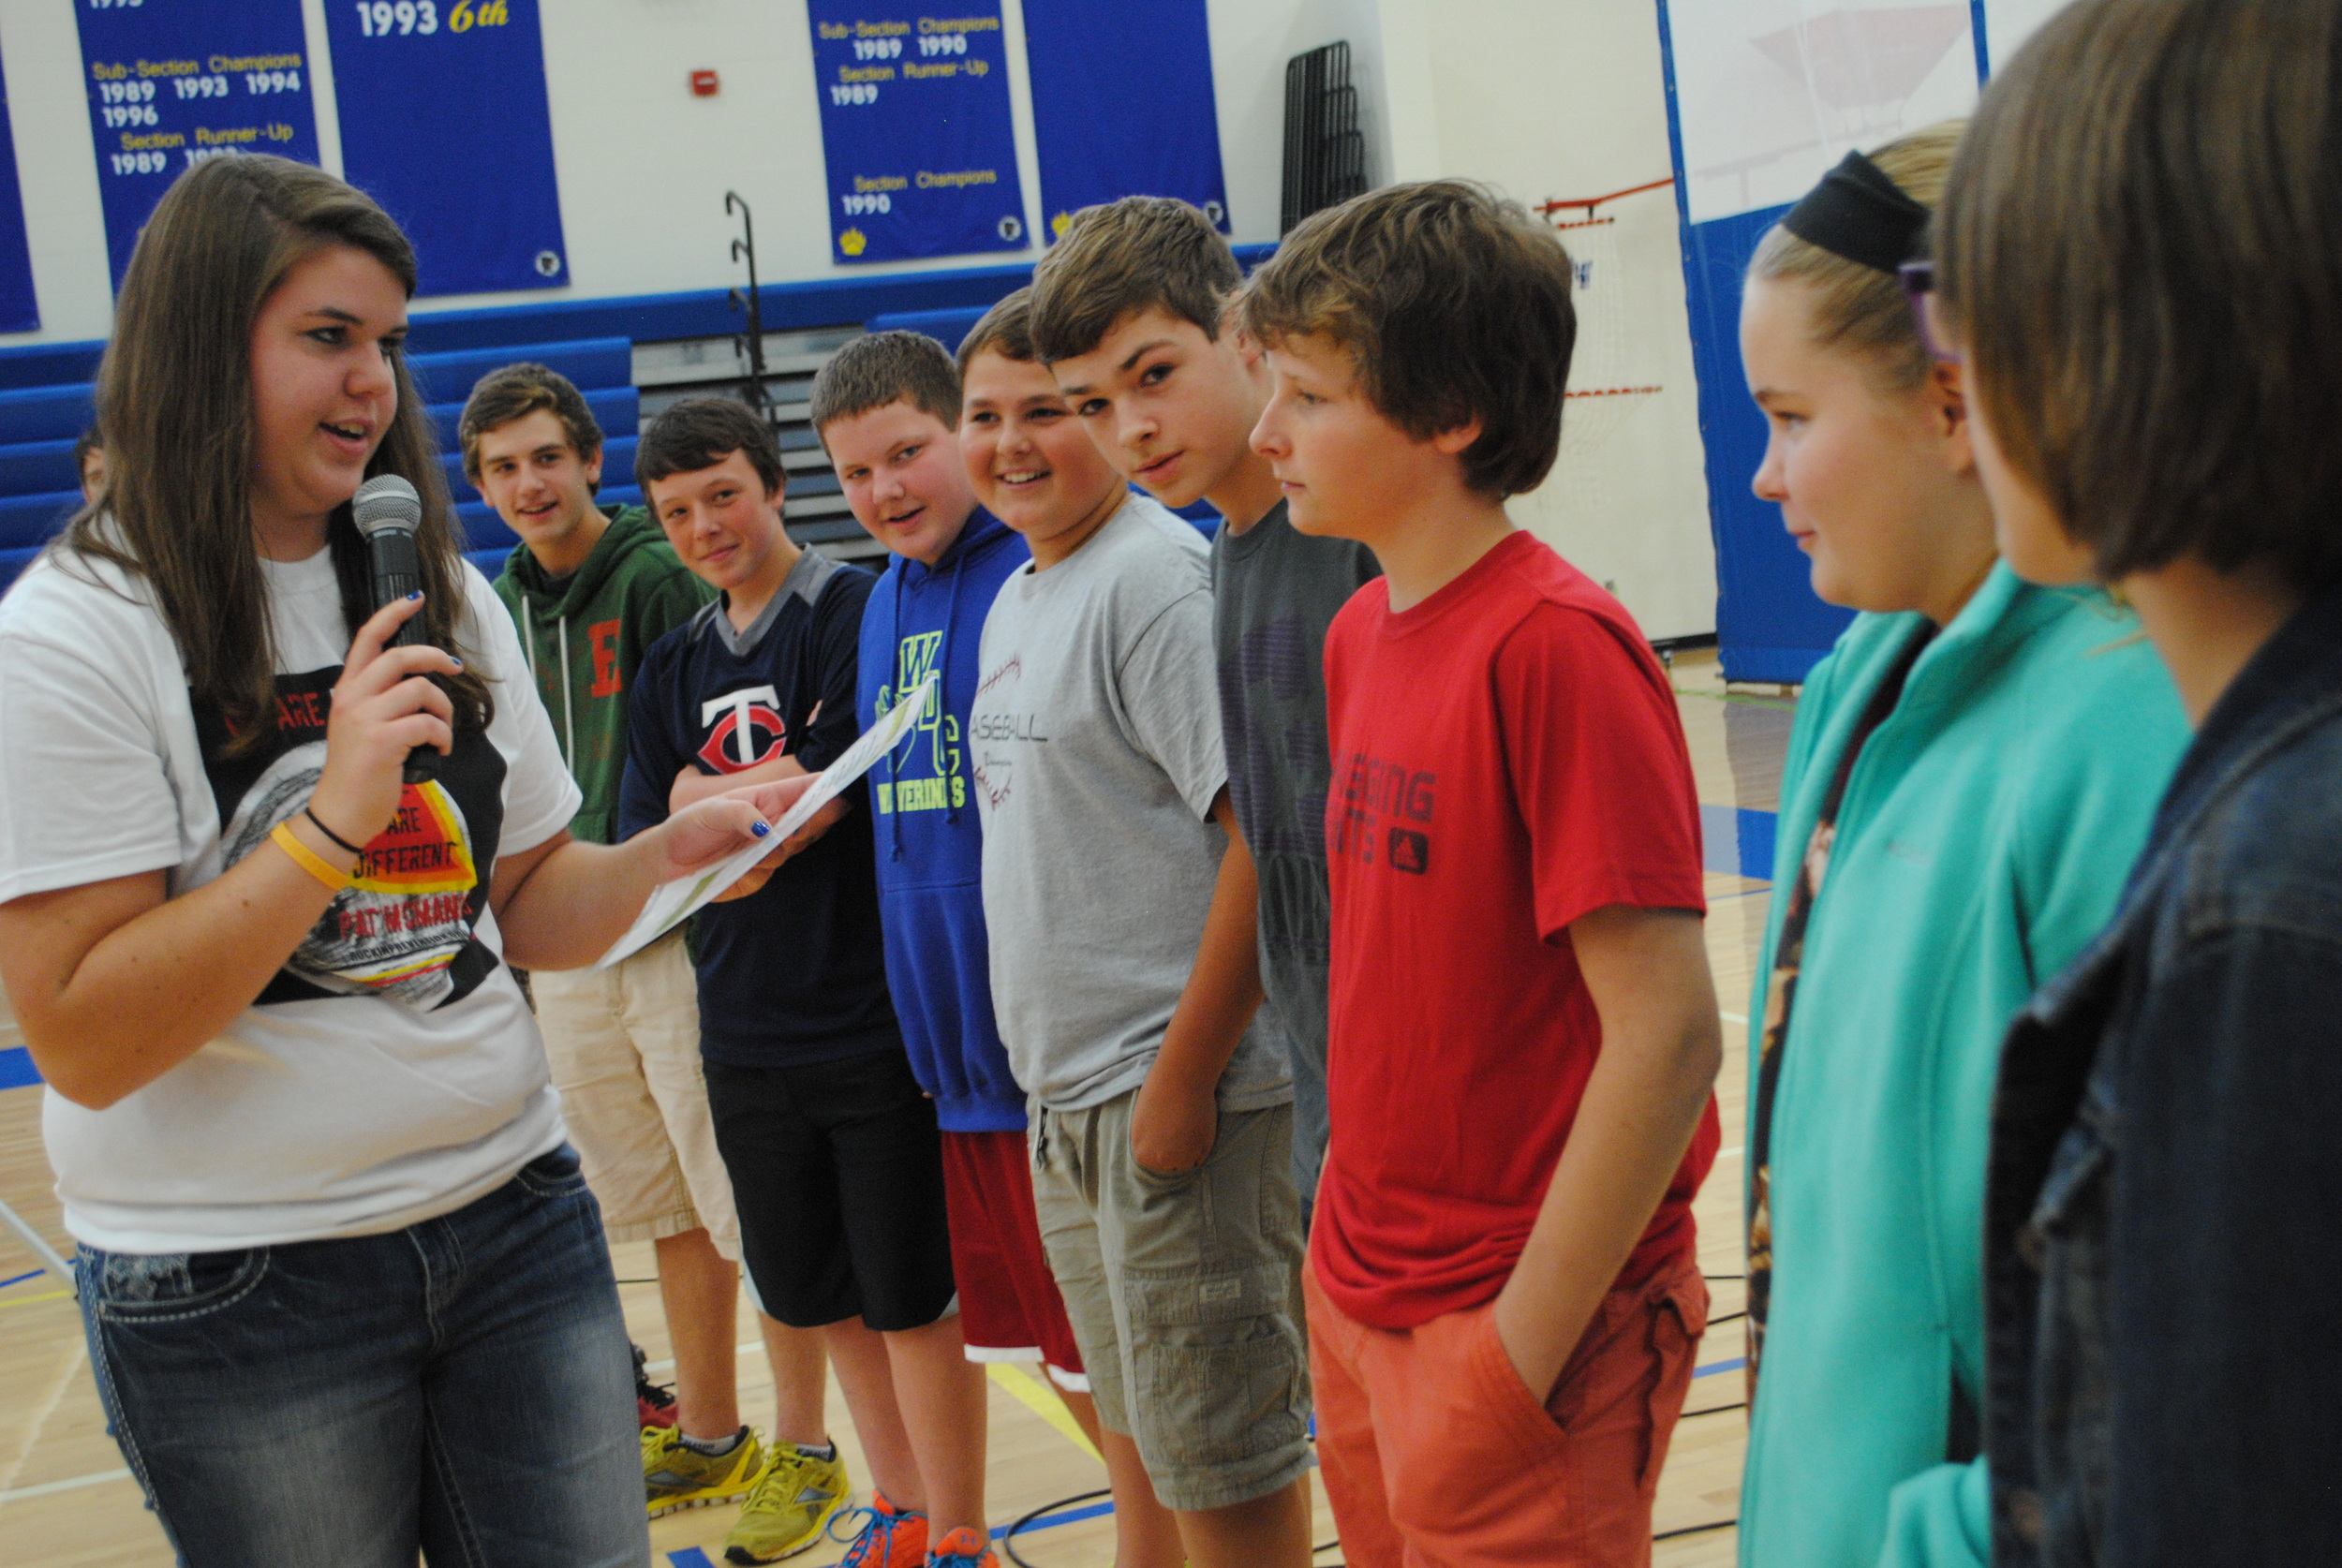 WDC High School mentor Jessica Wood leads a skit about assertiveness with a small group of junior high students.